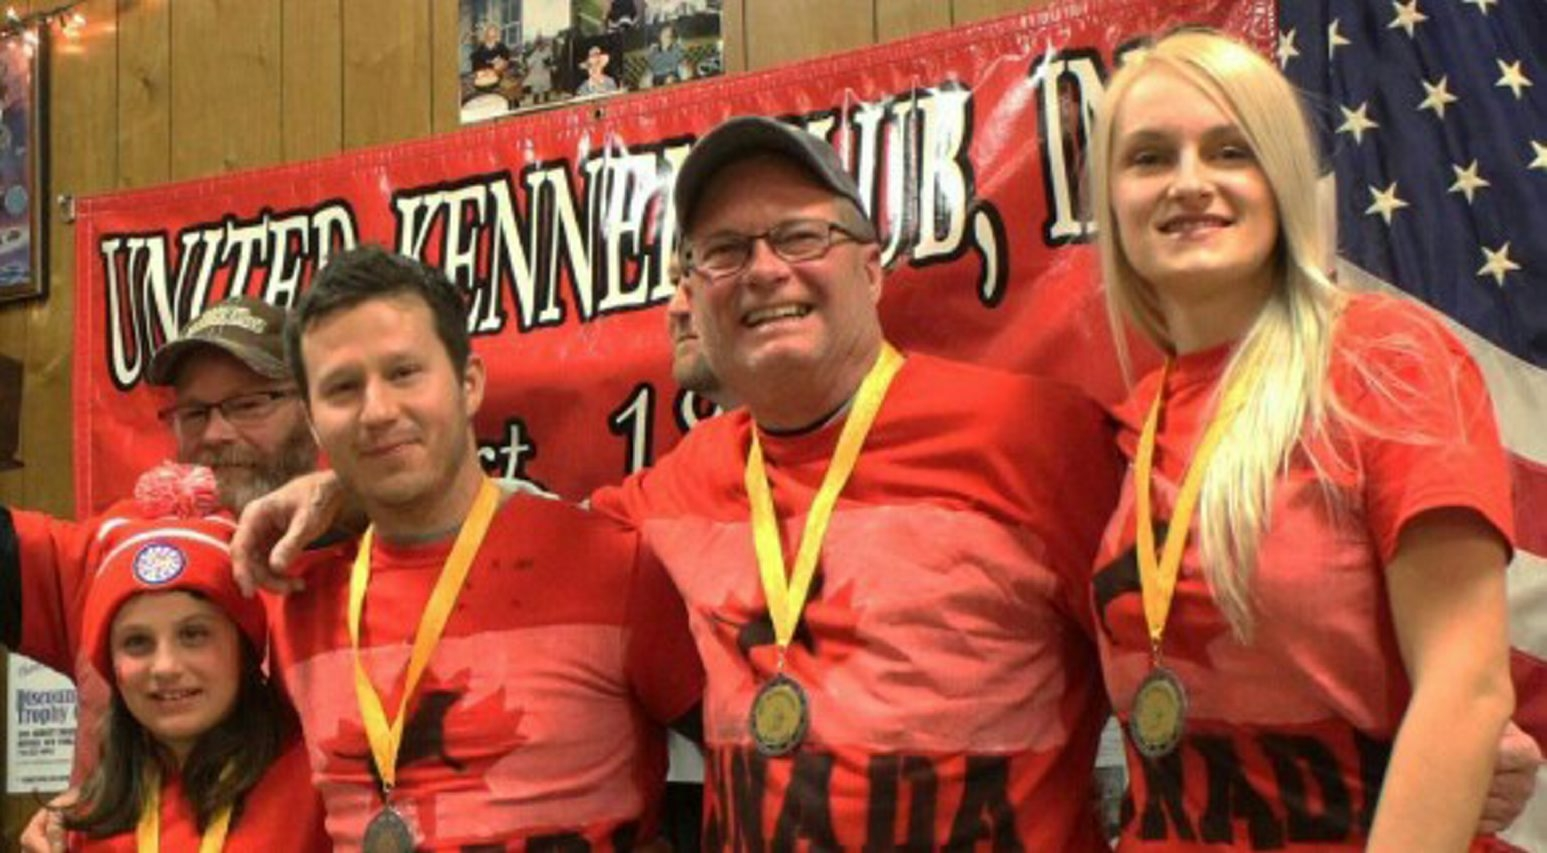 Matt Christopher, Dan Duhaime and Krista Gaverluk are three of the six members of a Port Colborne-based Canadian team that took top rabbit derby honors.